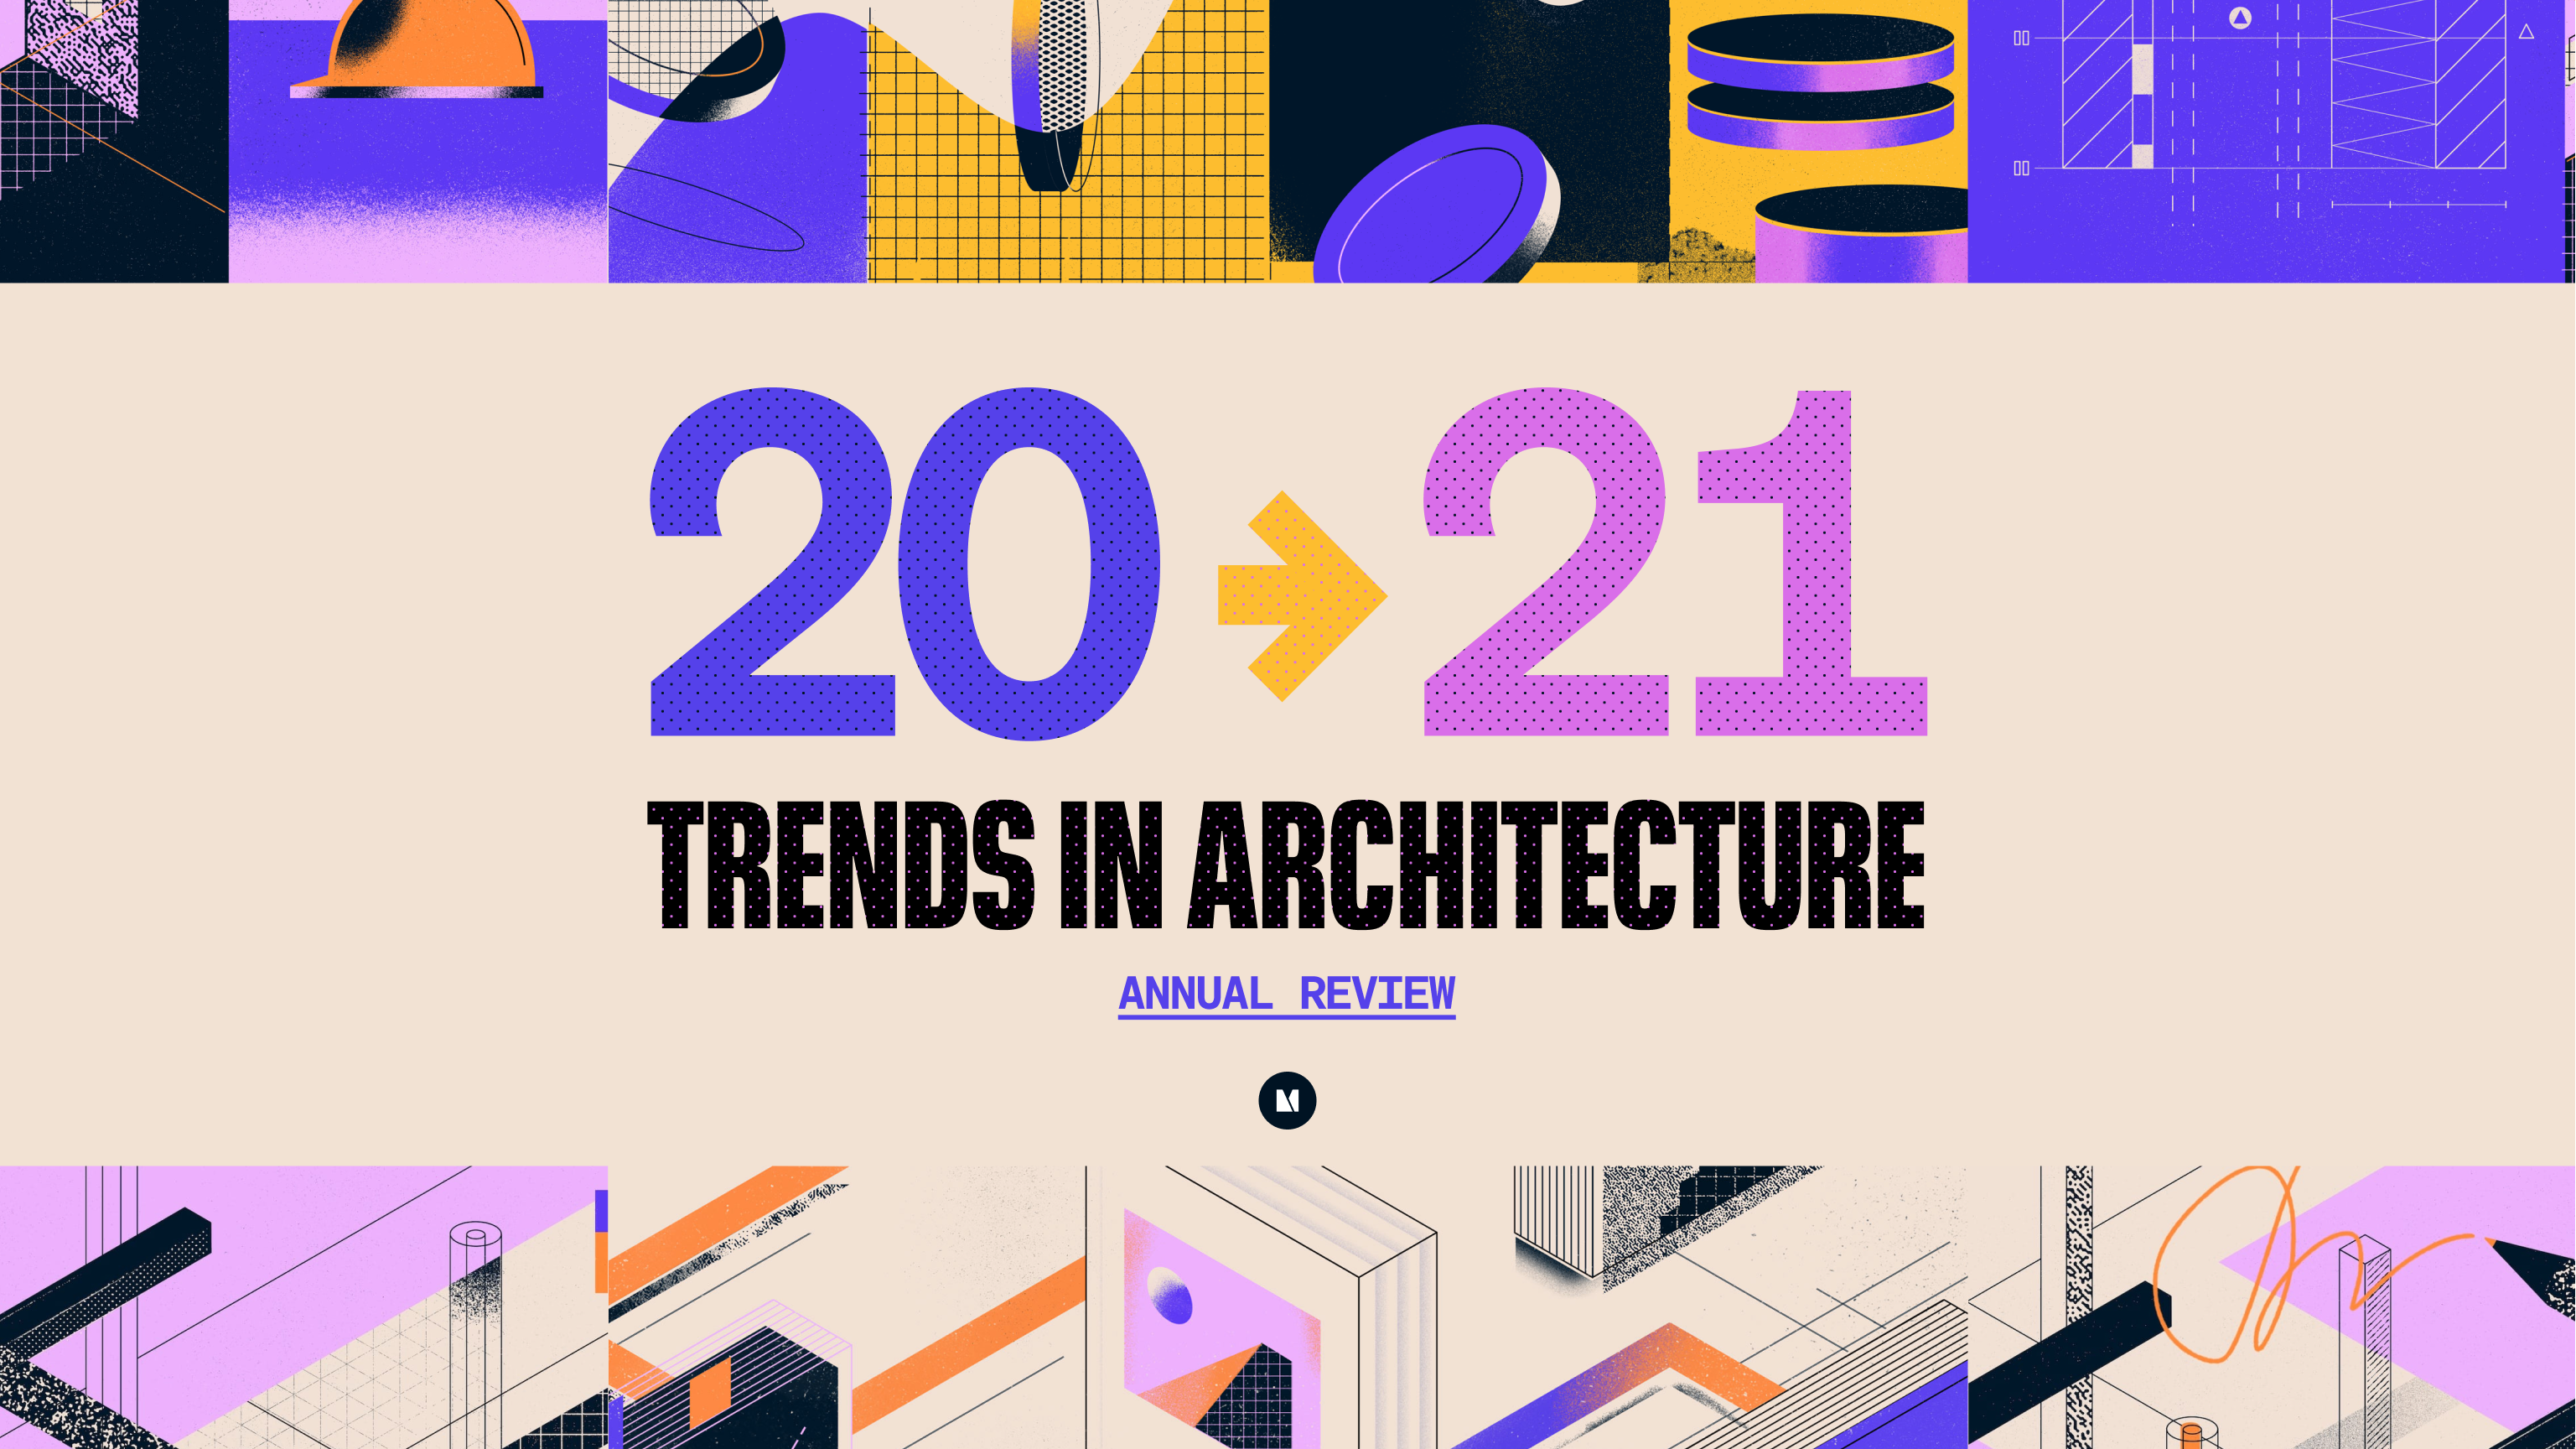 2020 Architecture Industry Statistics and Trends